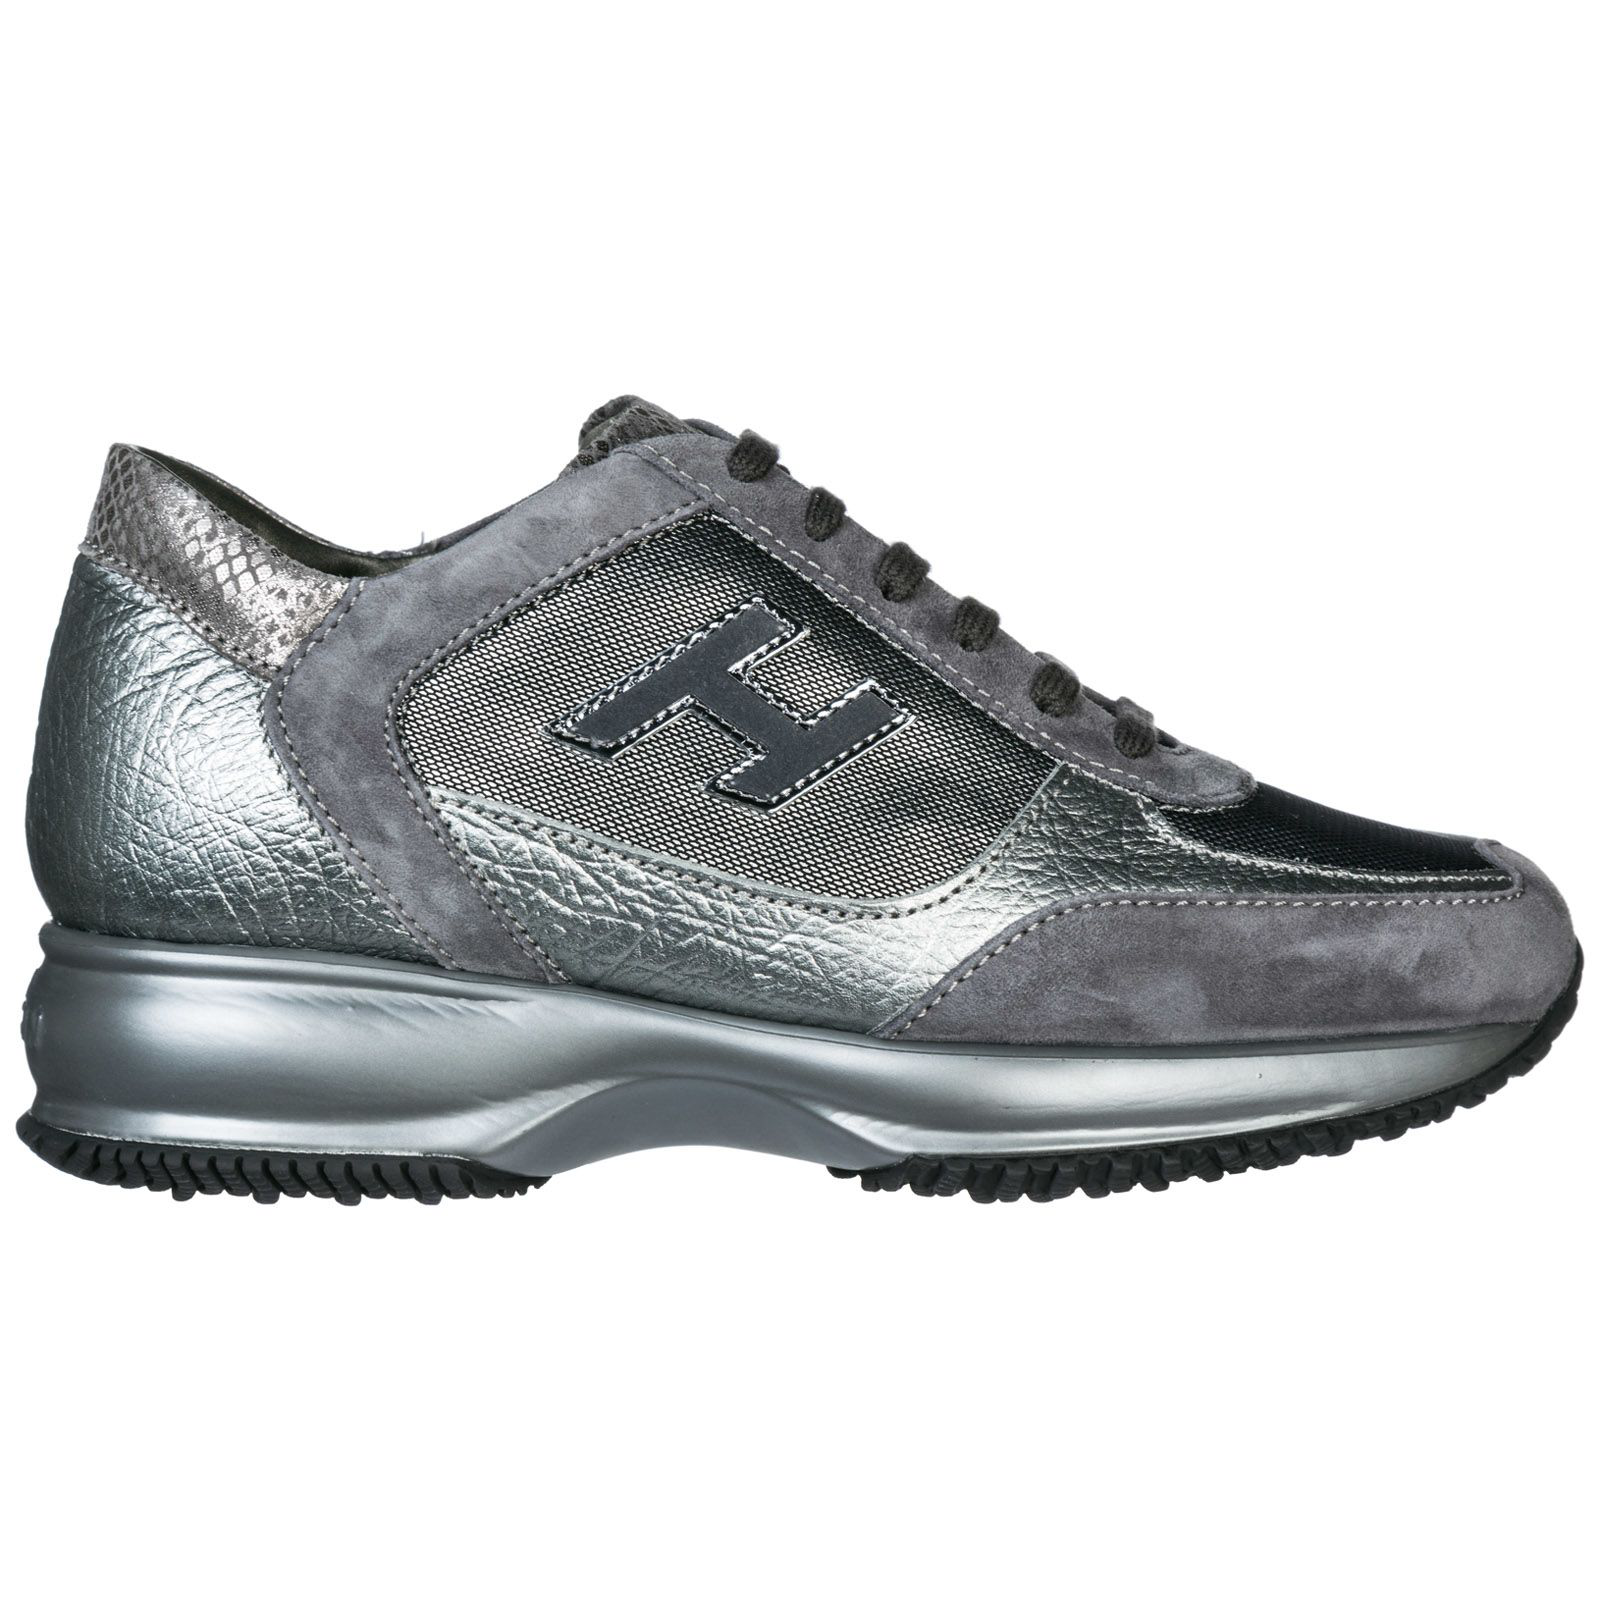 Hogan Shoes Leather Trainers Sneakers Interactive In Argento ...